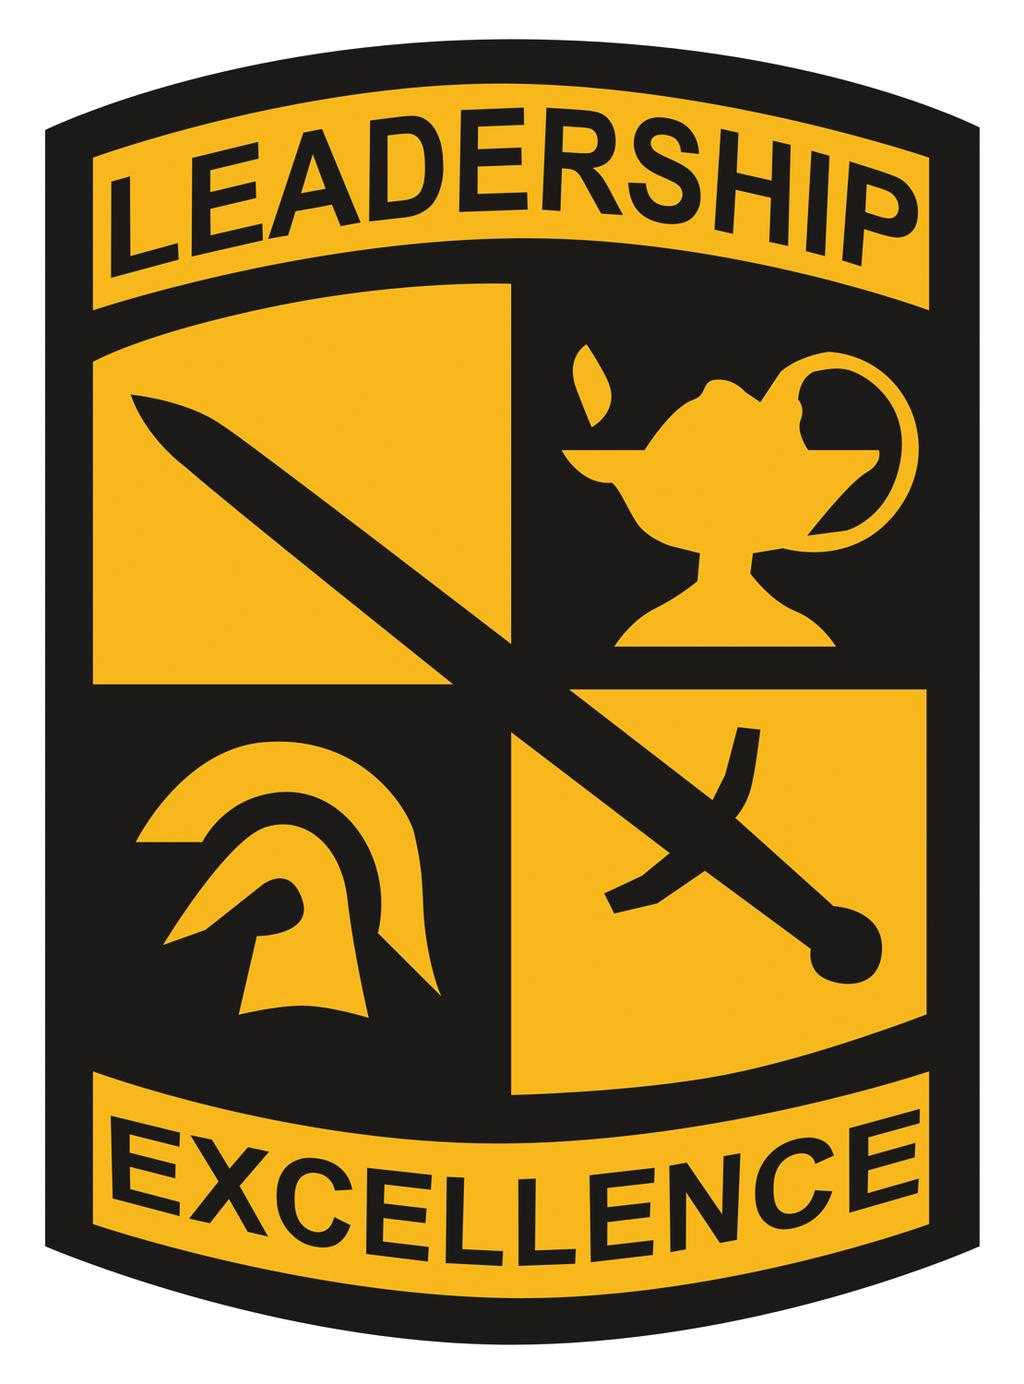 LEADERSHIP MSL I REVISED EDITION NEVER LEAVE A FALLEN COMRADE.